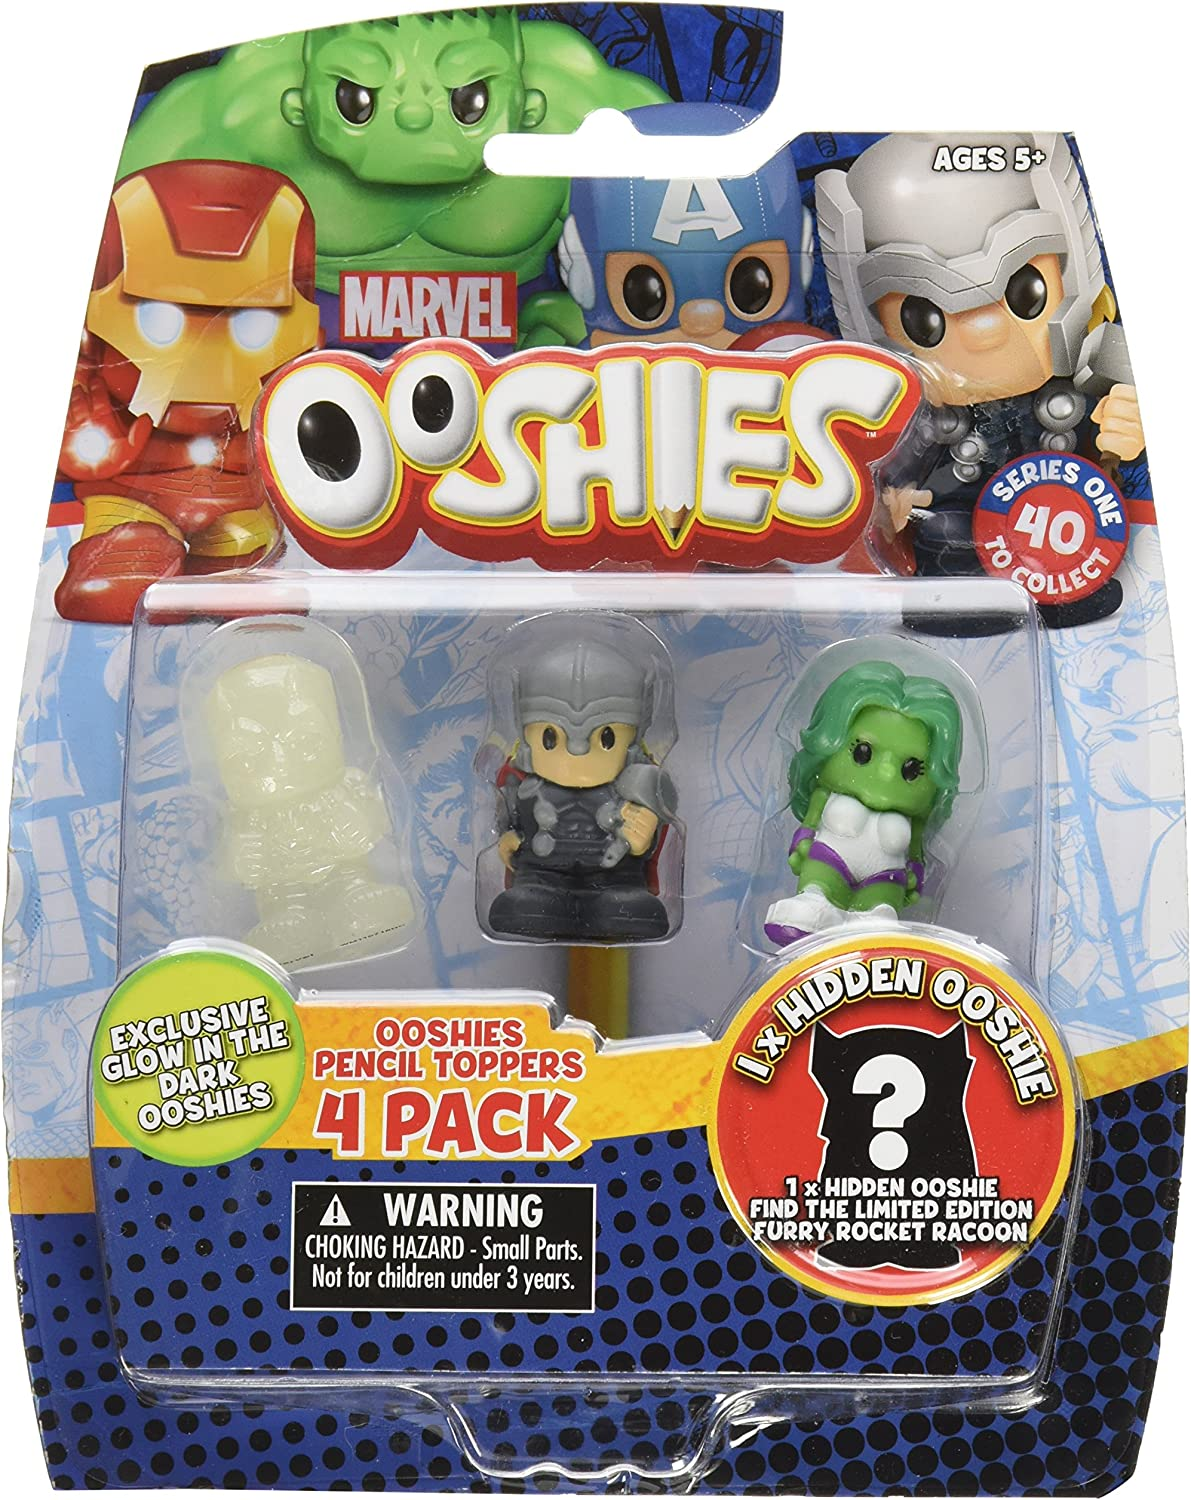 OOSHIES LIMITED EDITION SERIES 4 MARVEL HULK DC SUPER RARE